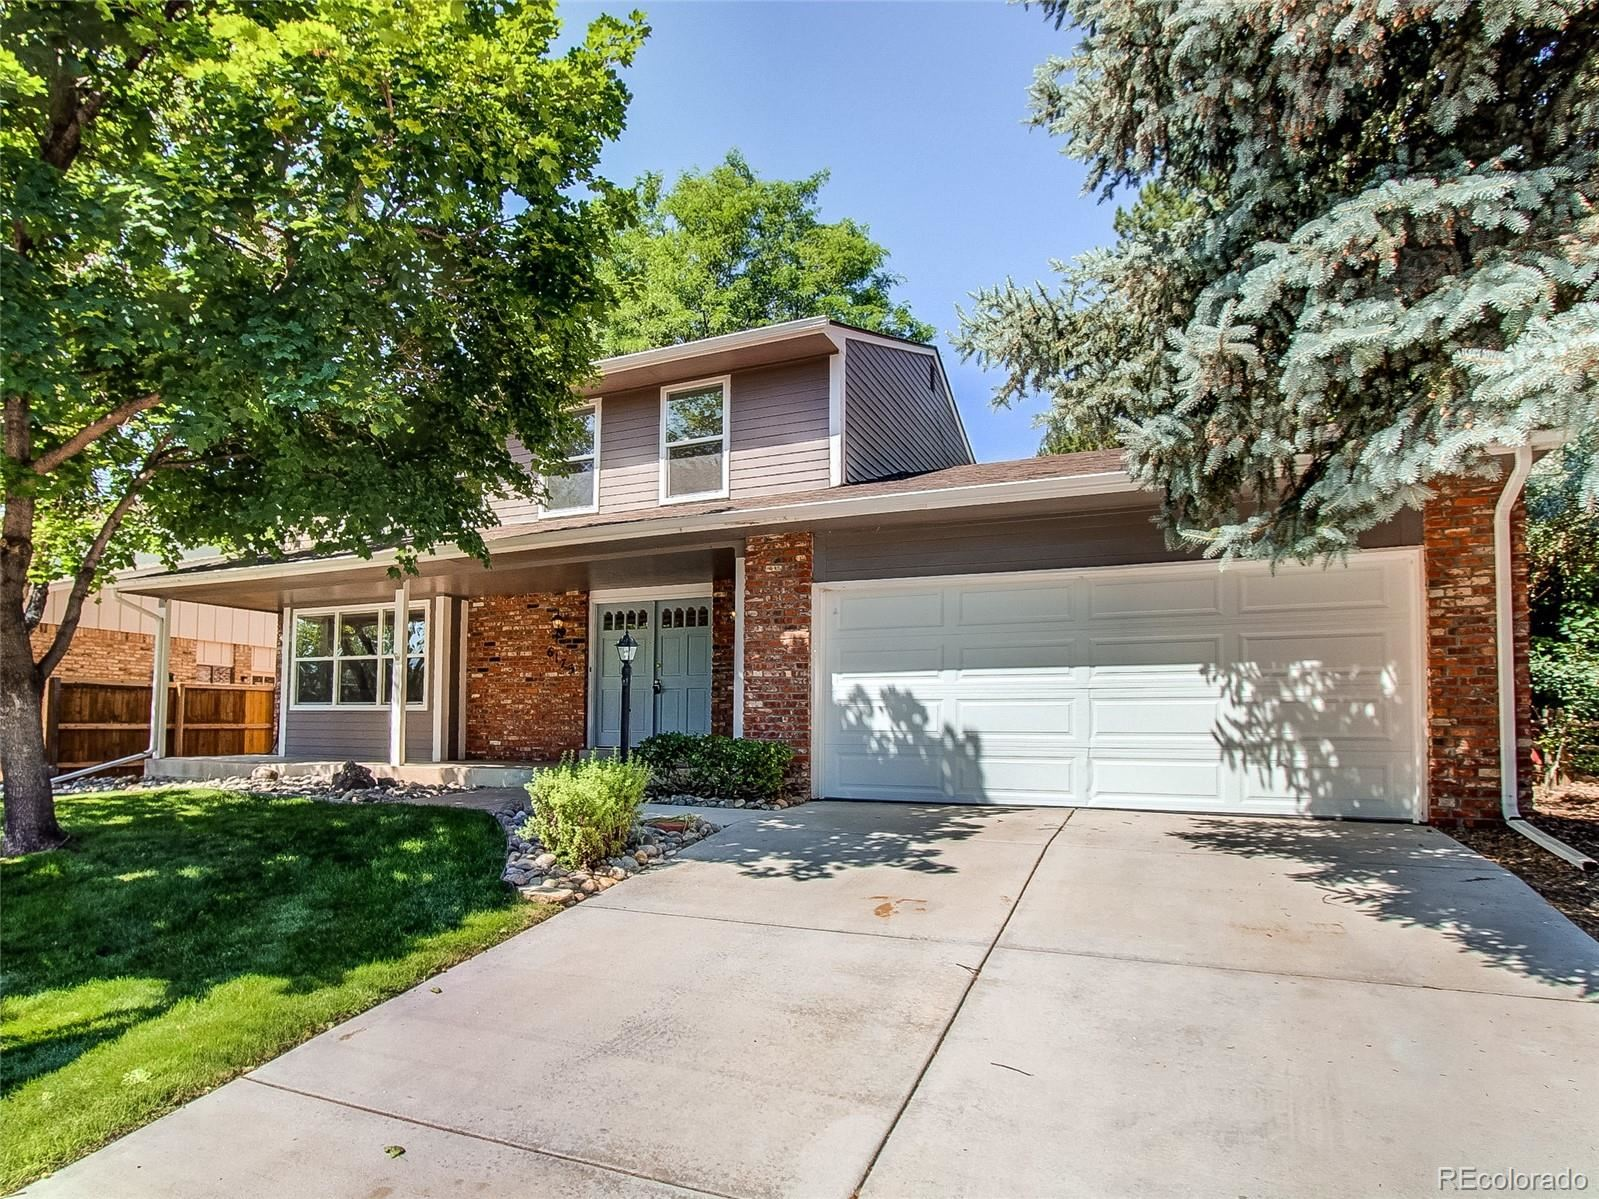 6175 S Lima Way, Englewood, CO 80111 - #: 4652234